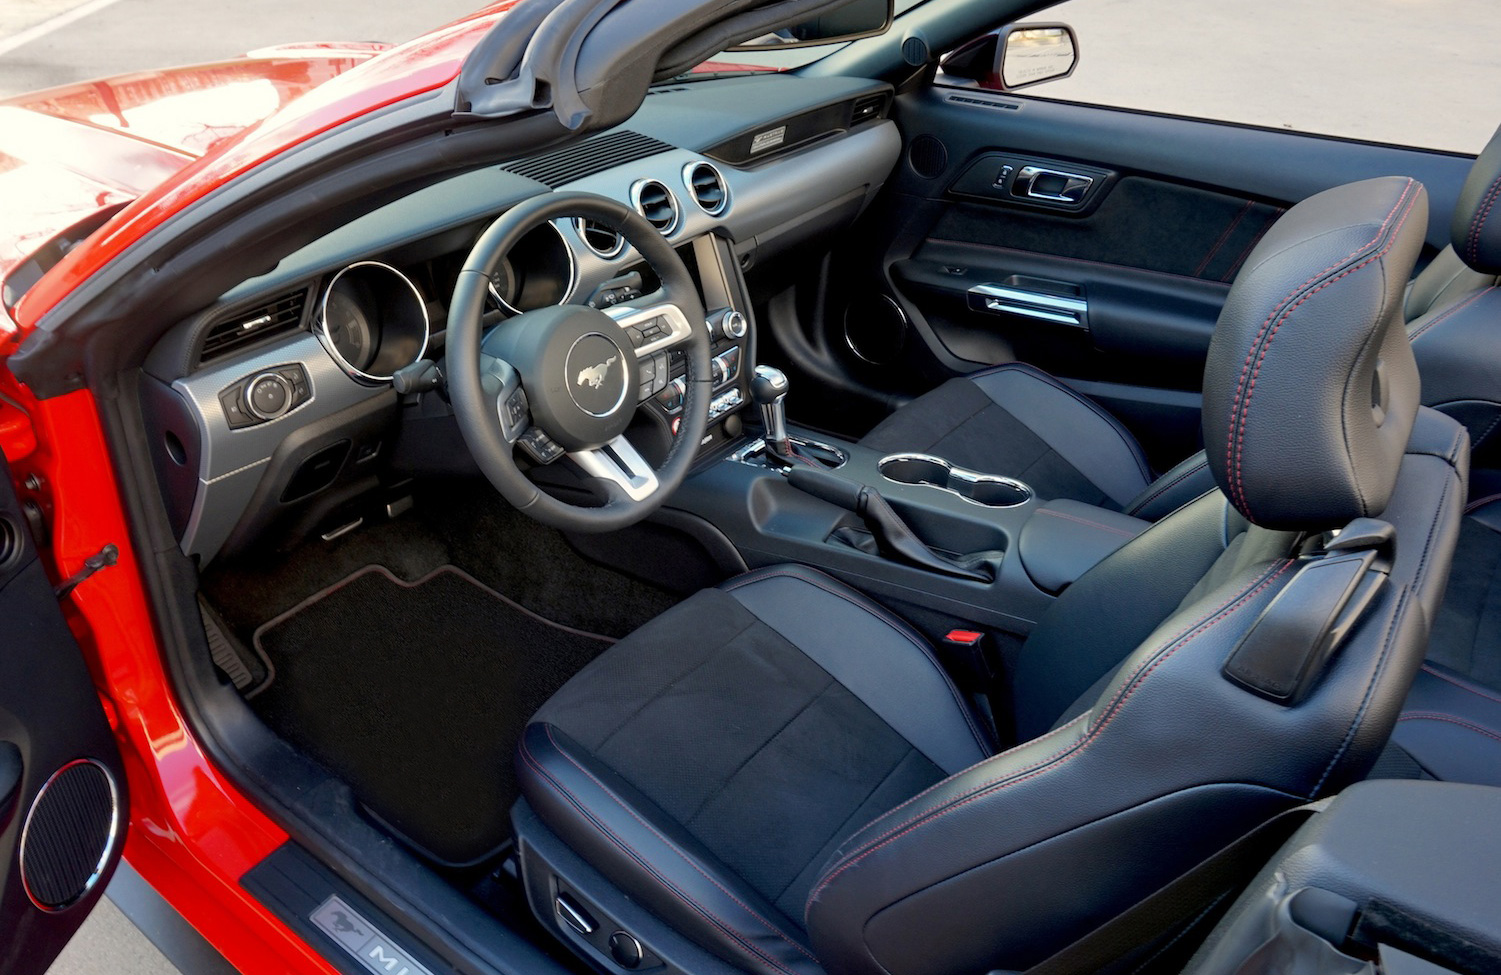 Interior of the 2016 Mustang GT Convertible - California Special